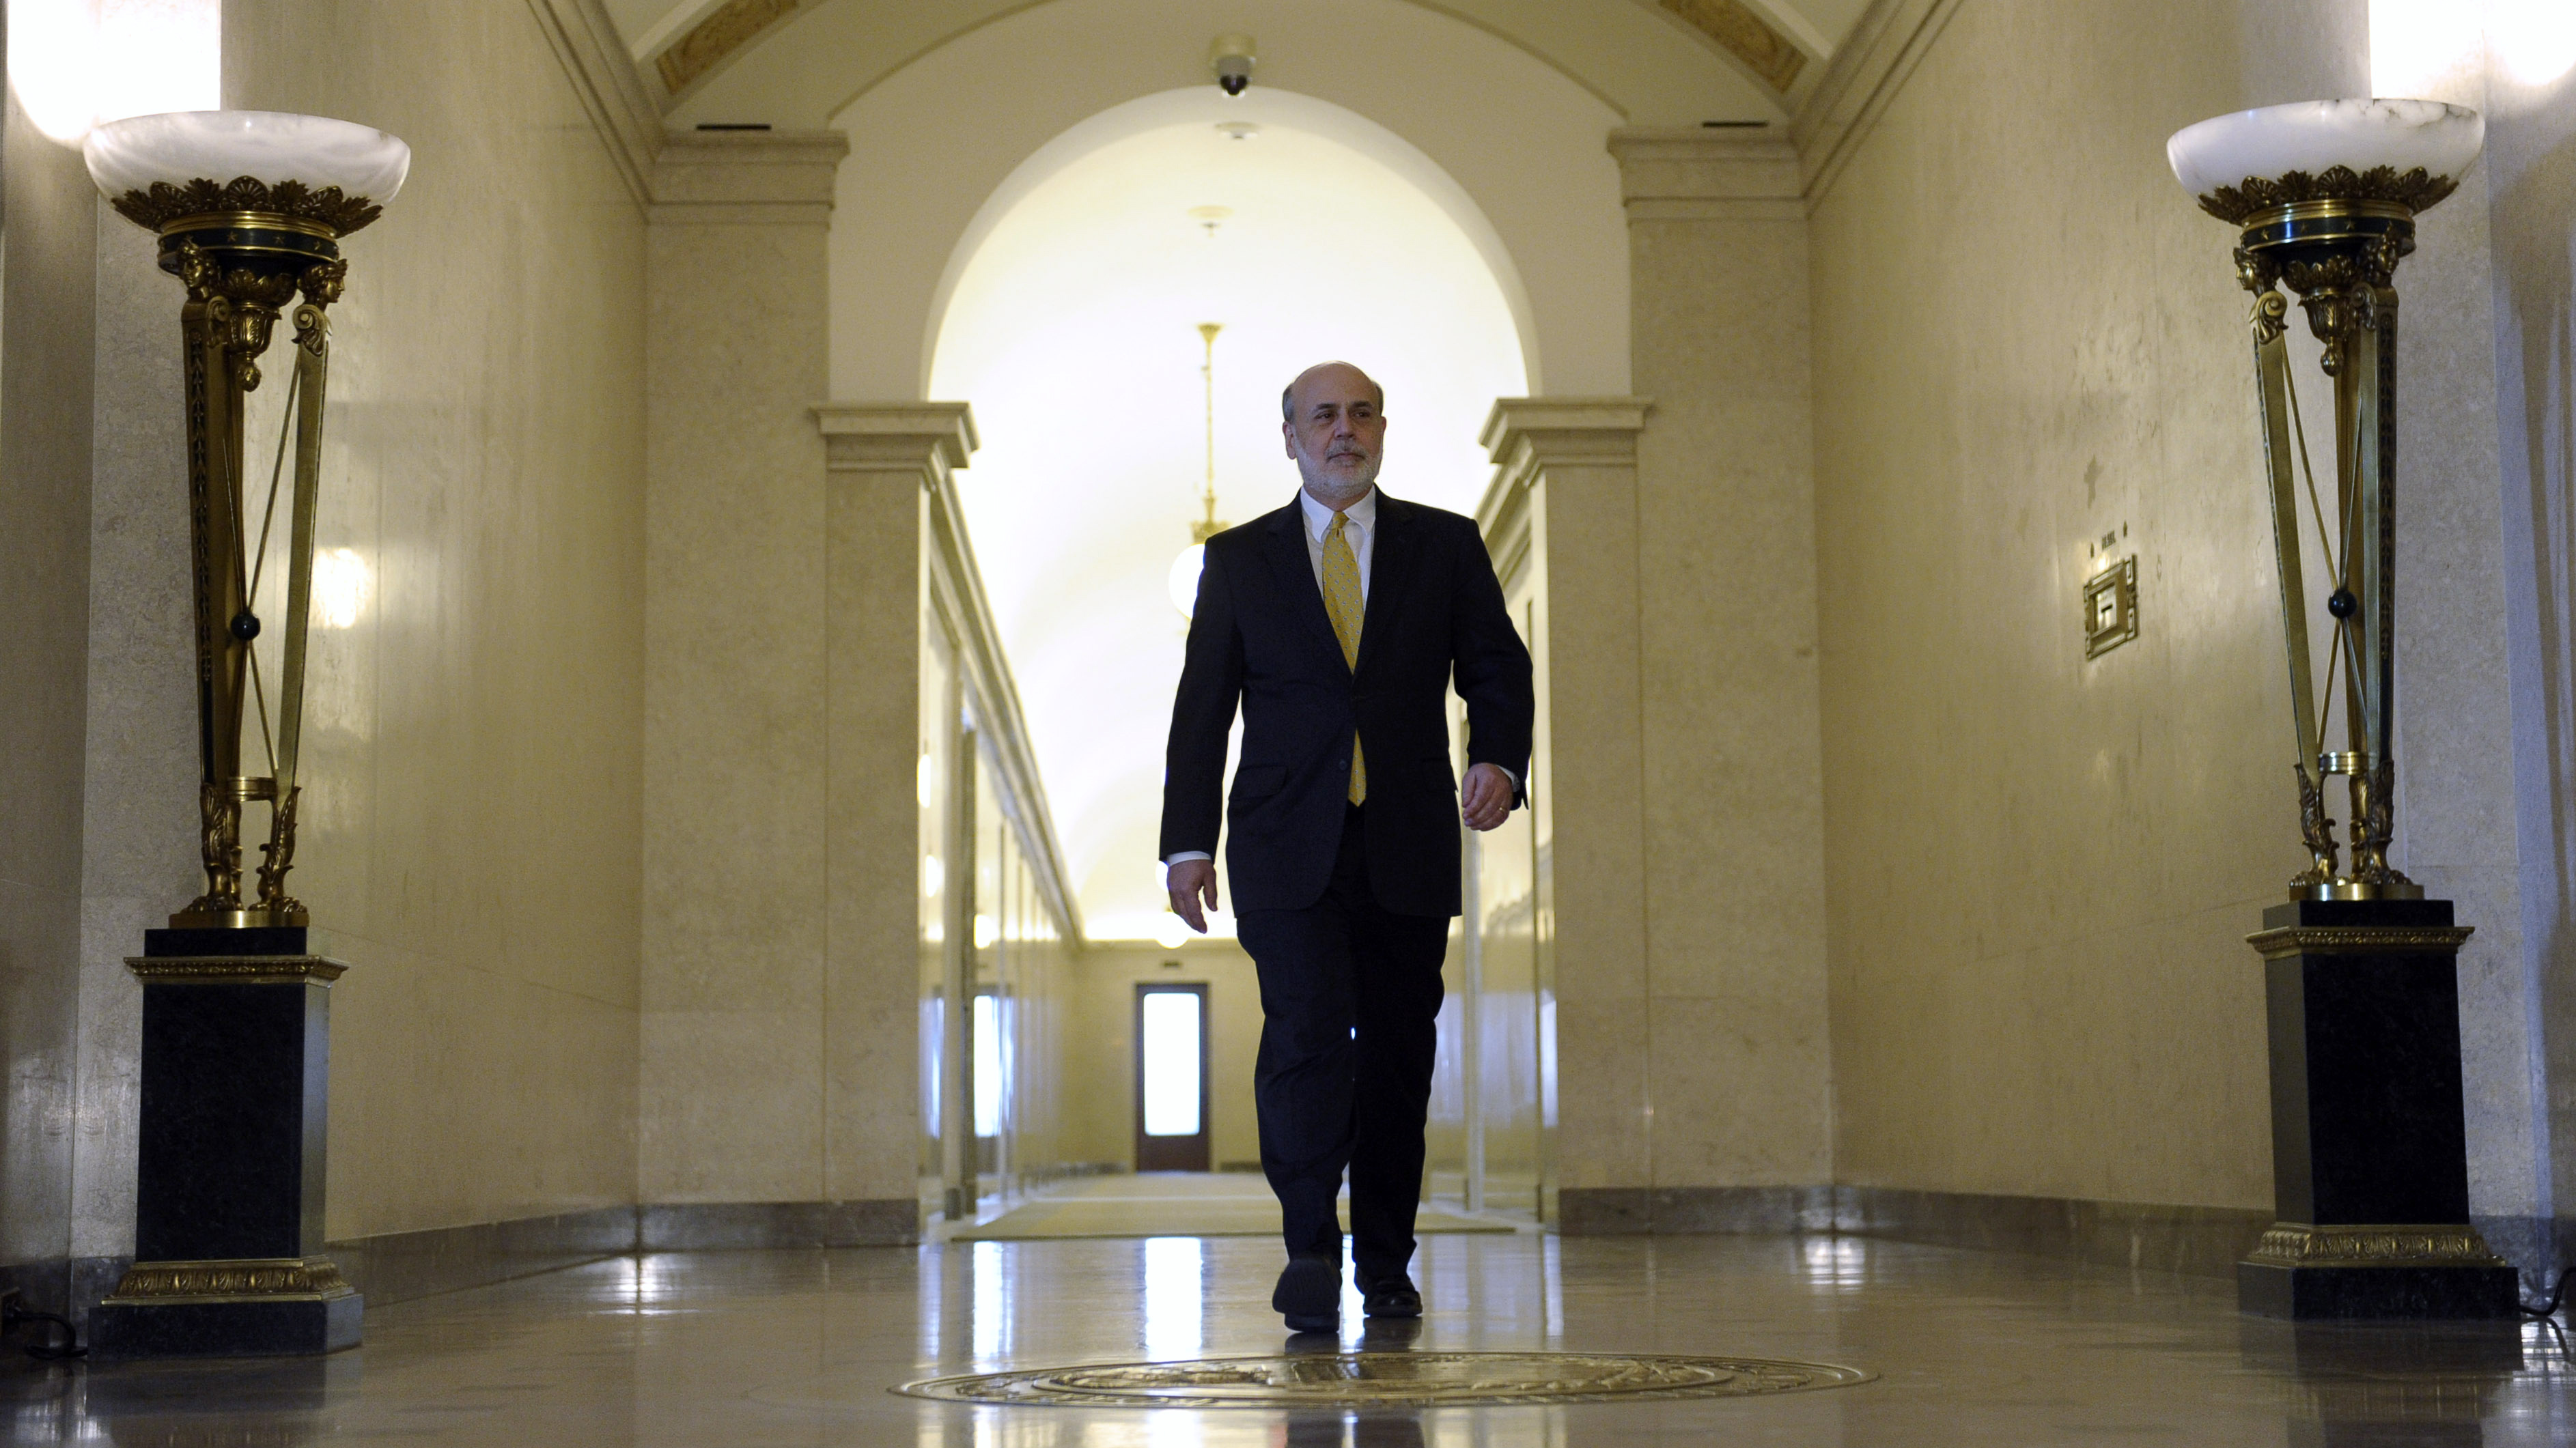 How Tough Is The Mortgage Market? Even Former Fed Chairman Ben Bernanke Can't Get Refinanced : The Two-Way : NPR